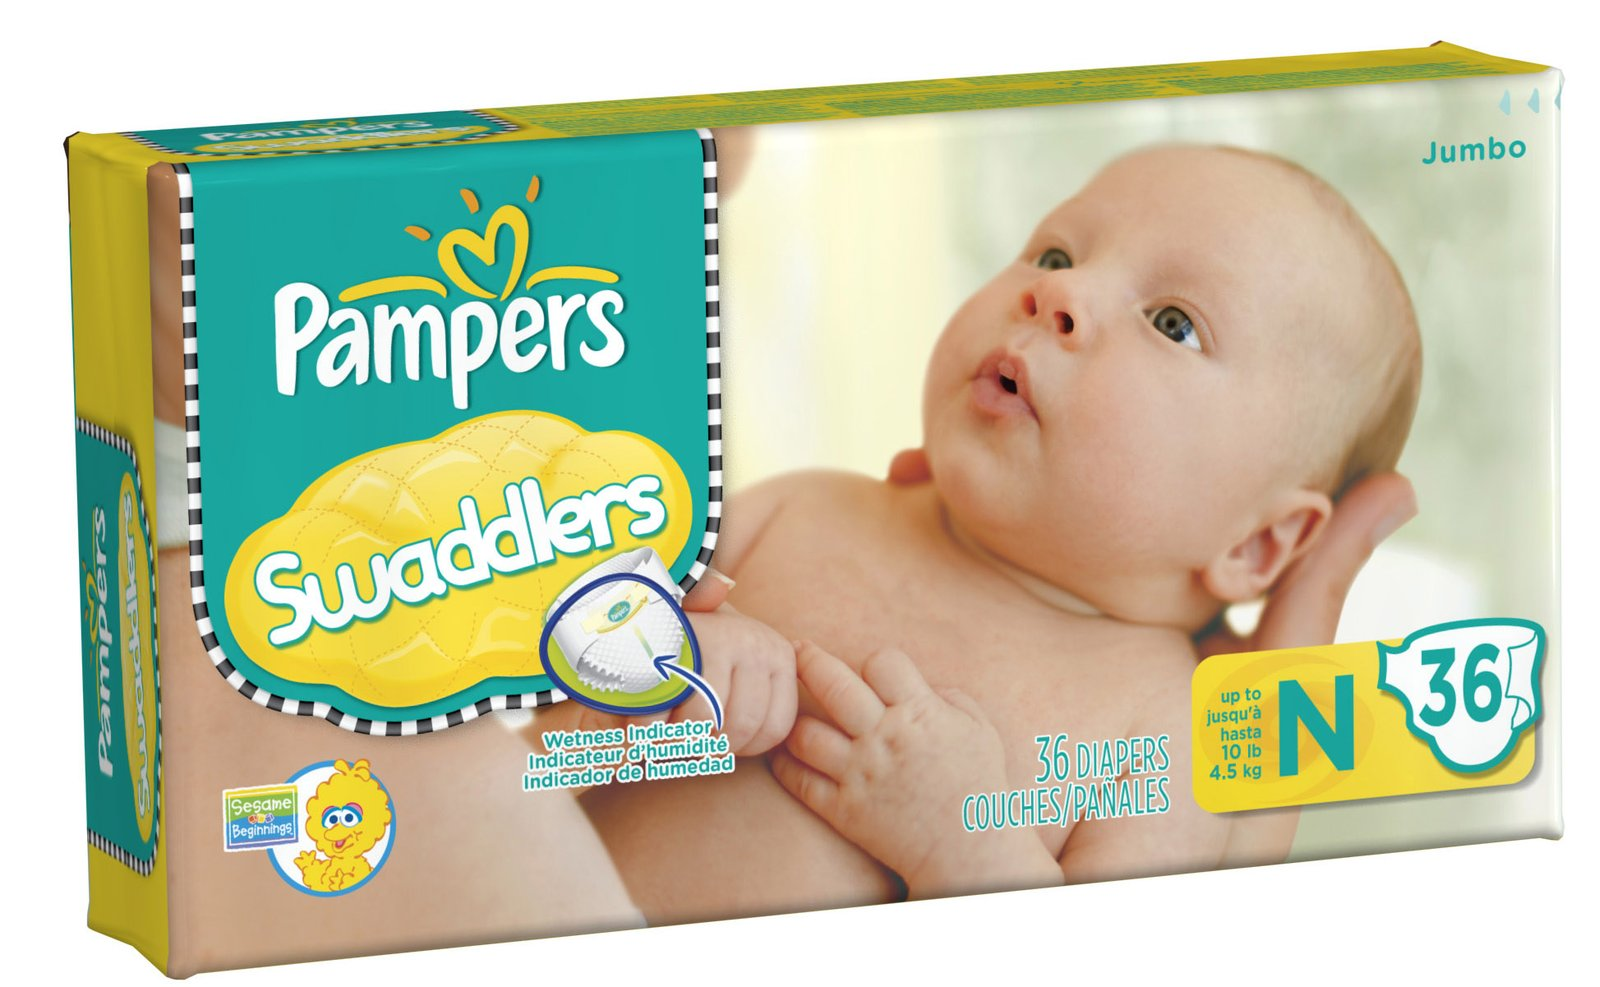 pampers diapers newborn - photo #20